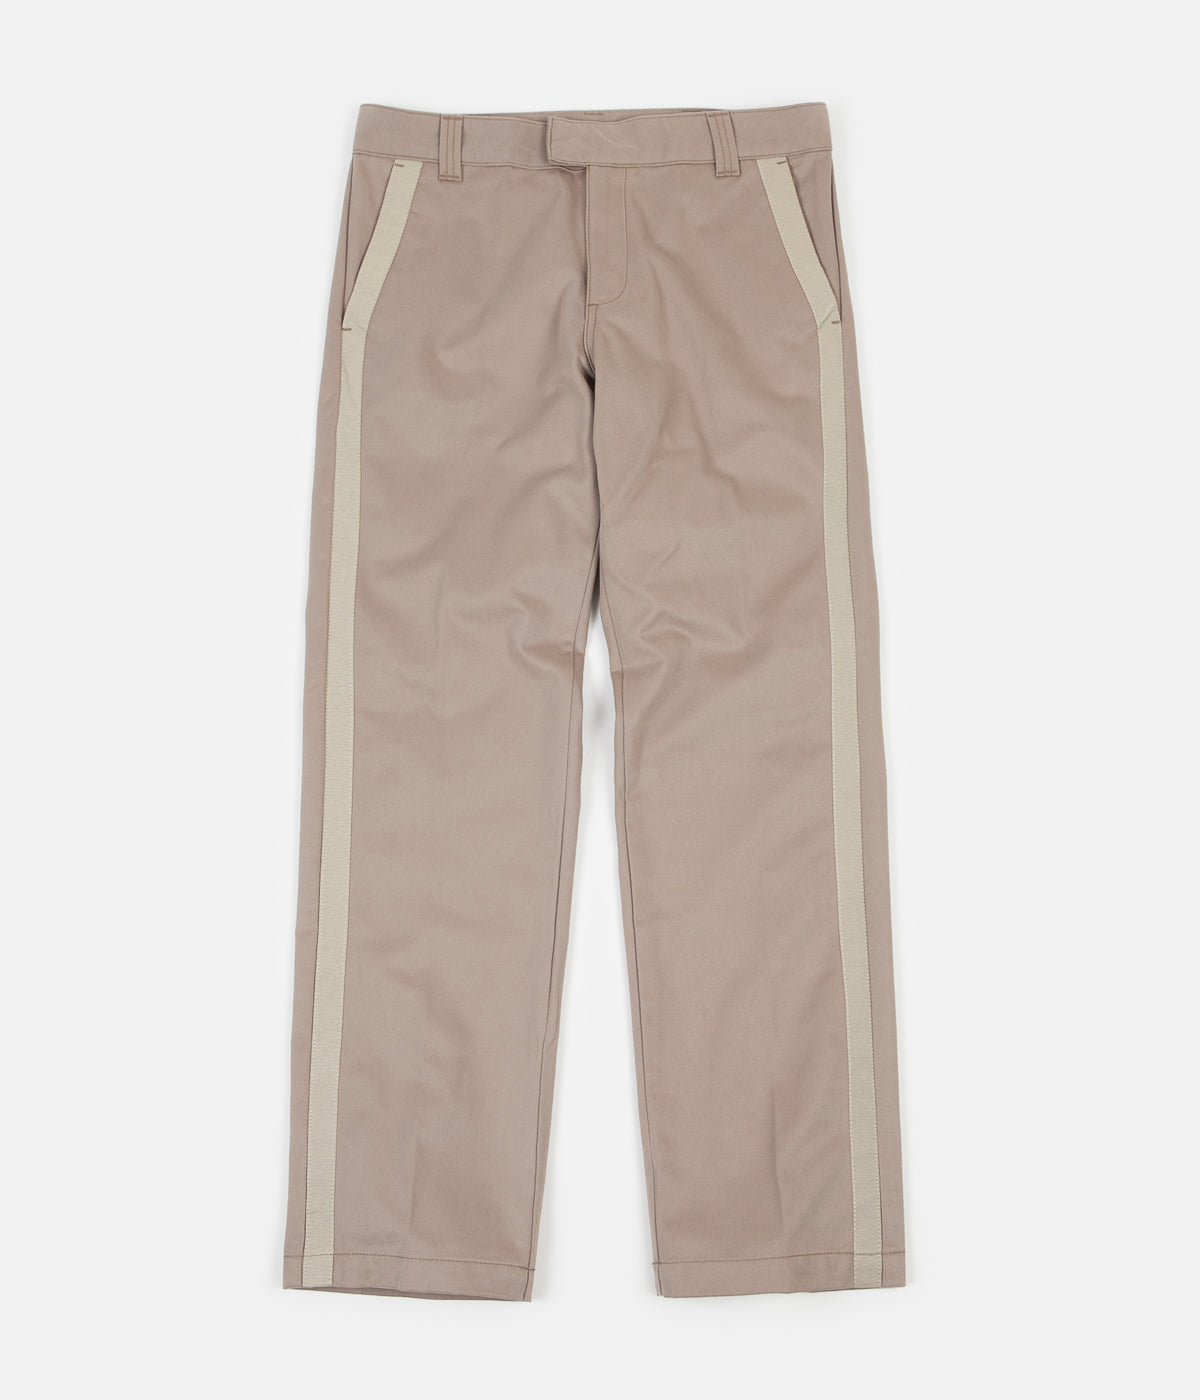 Soulland Greco Heavy Trousers - Light Beige